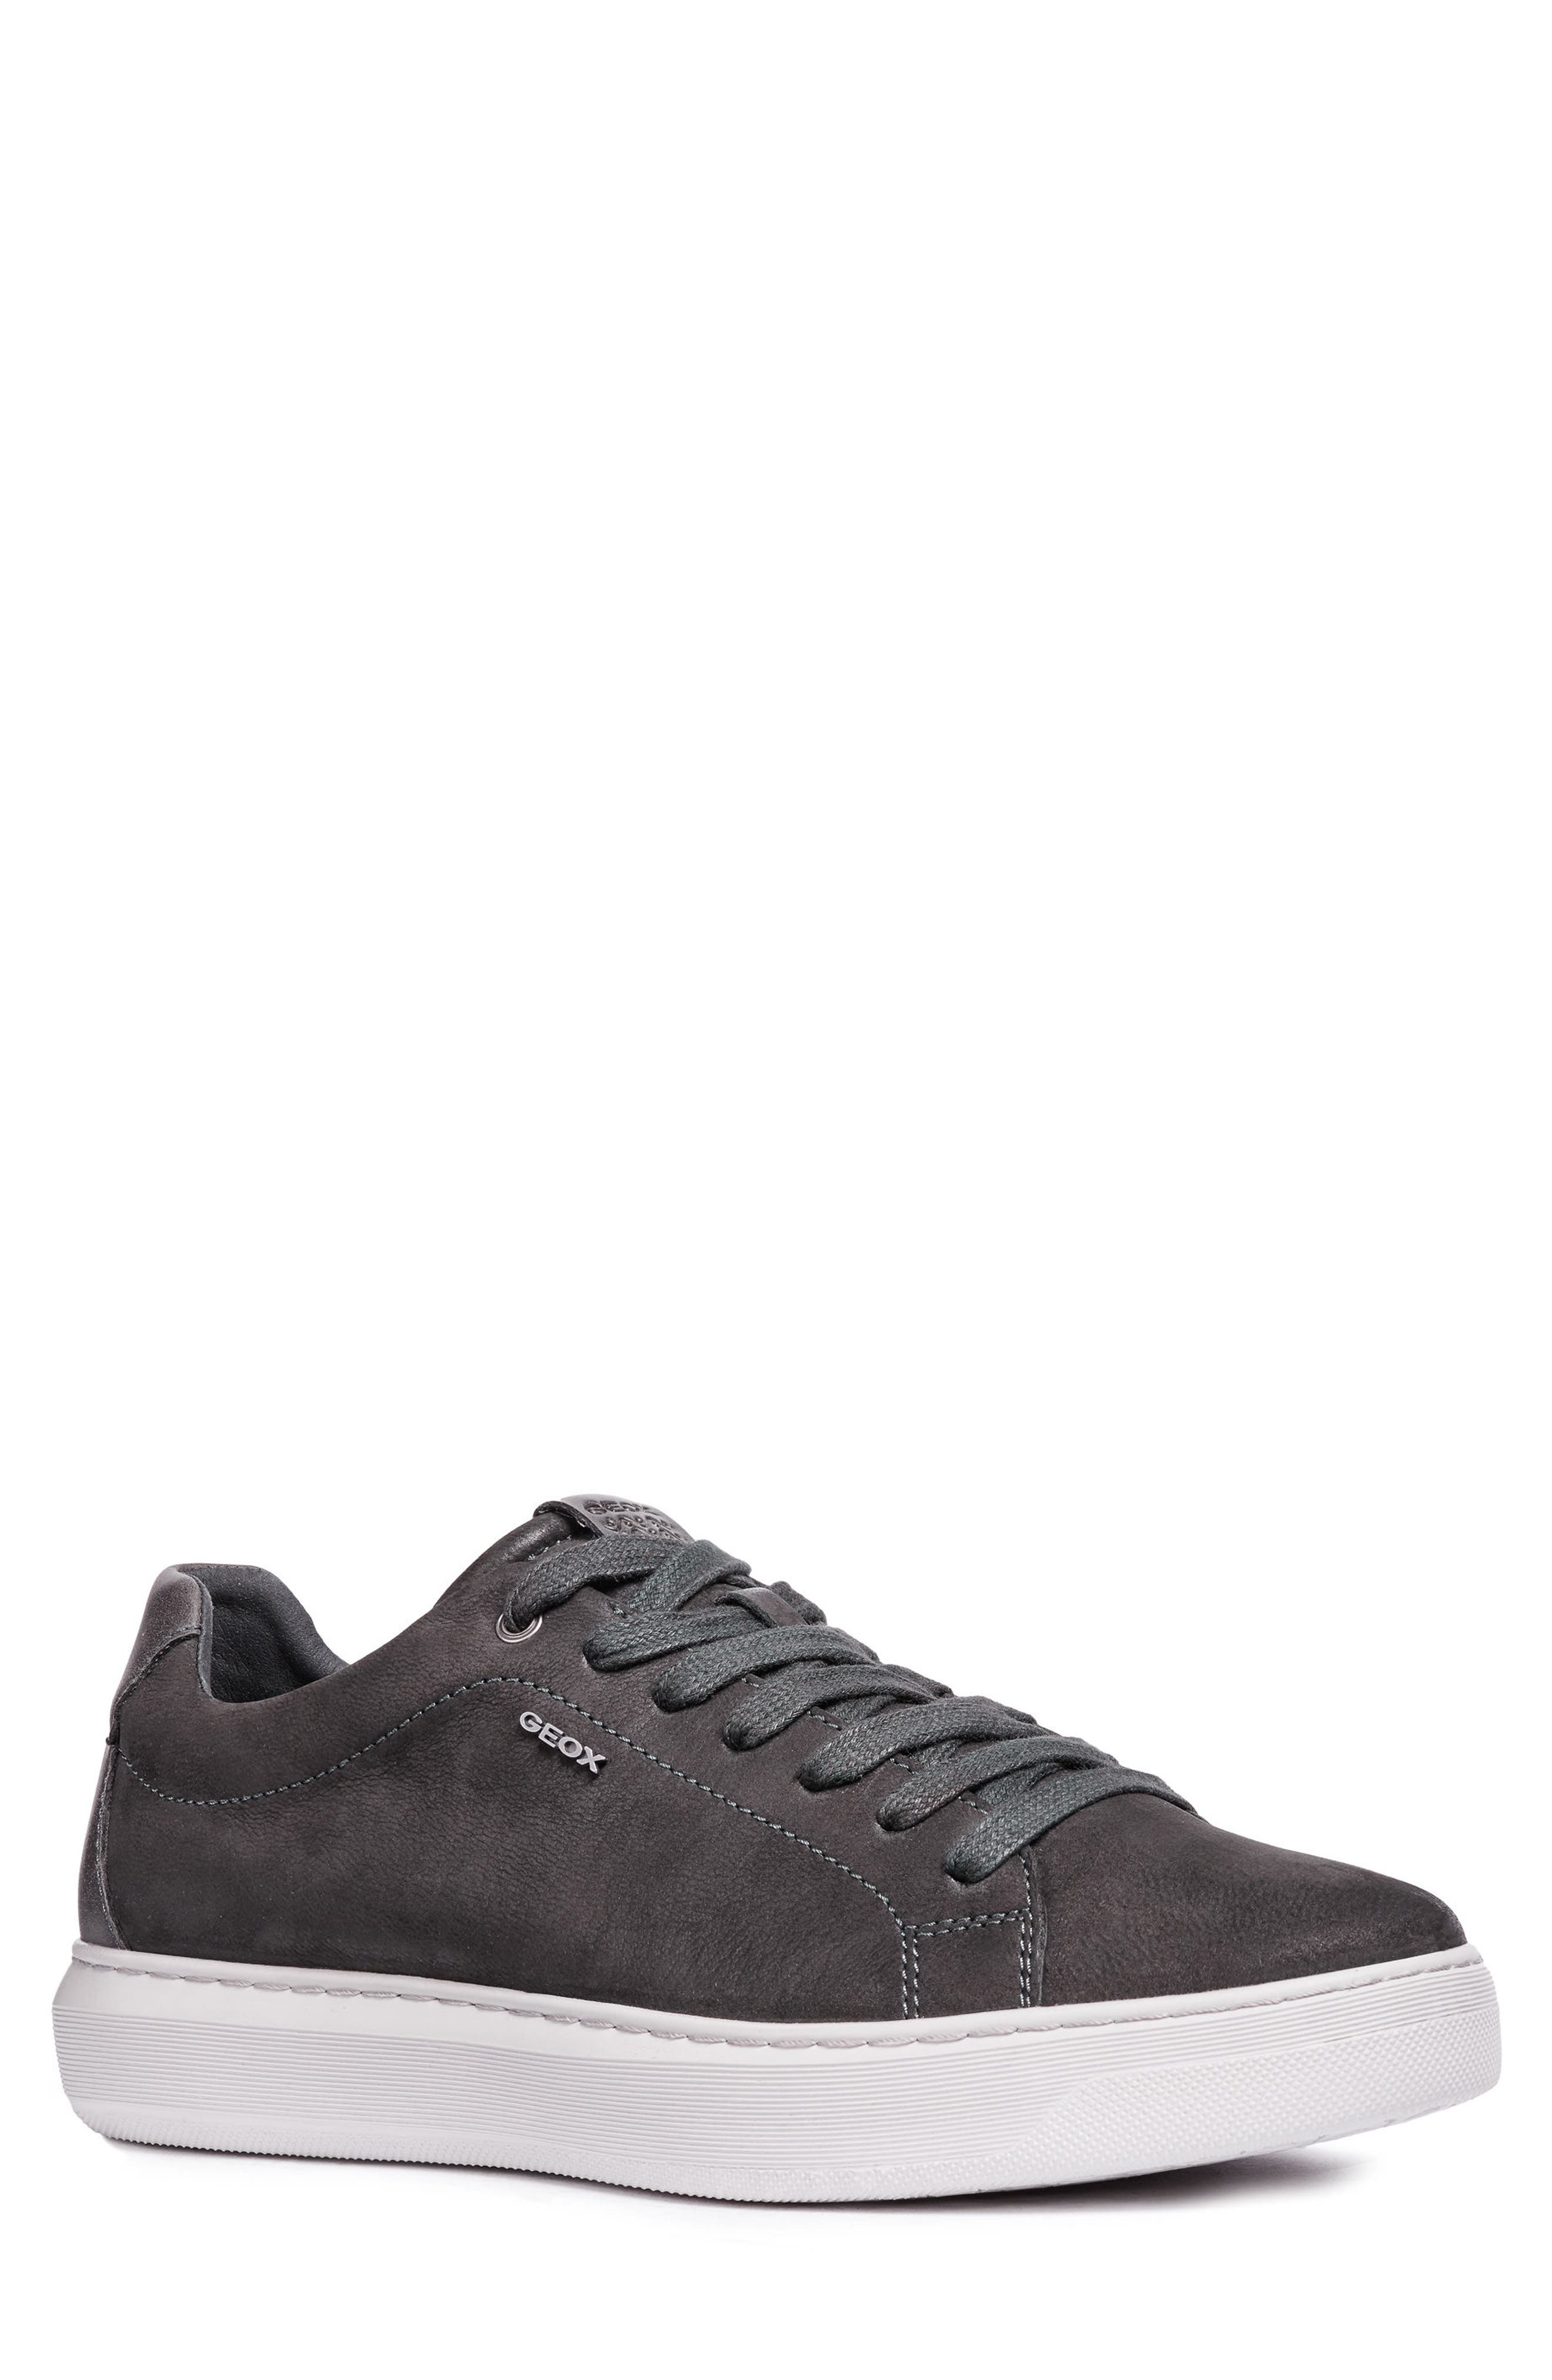 Deiven 5 Low Top Sneaker,                             Main thumbnail 1, color,                             DARK JEANS LEATHER